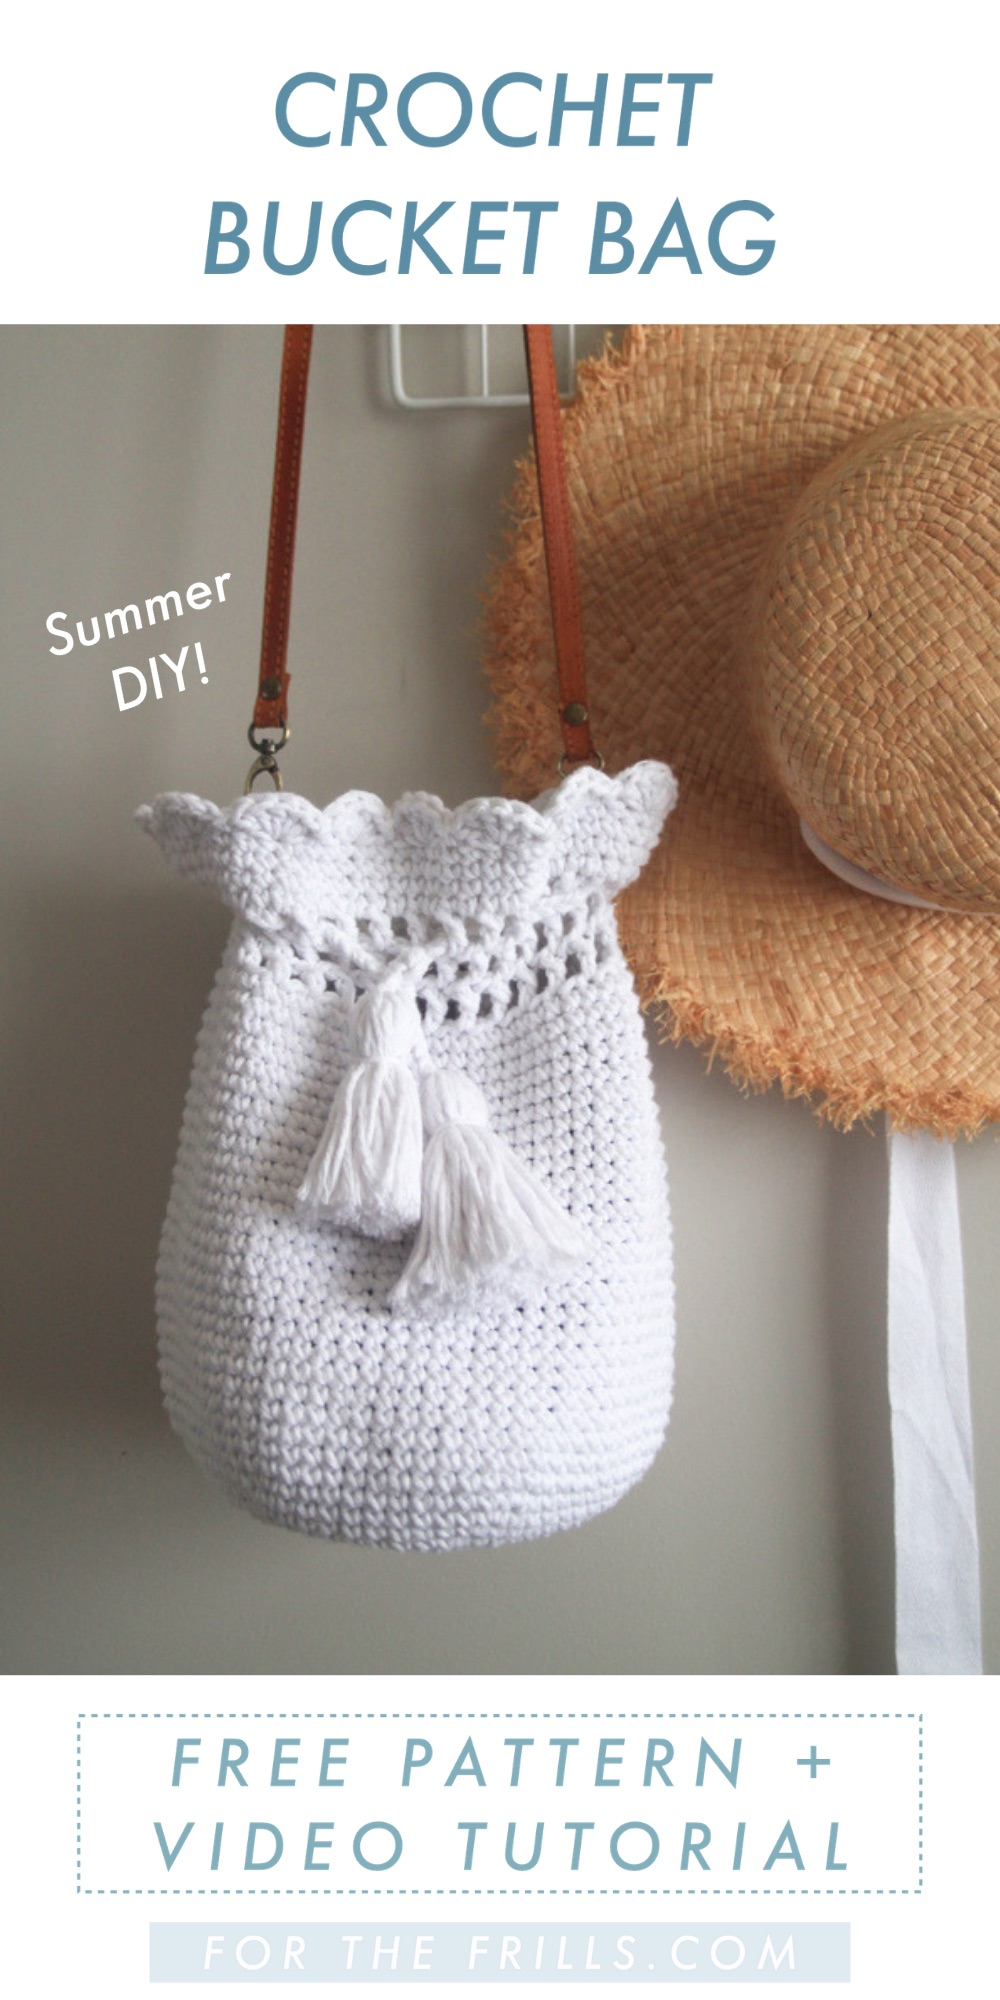 Scallop Crochet Bucket Bag Free Pattern Video Tutorial For The Frills